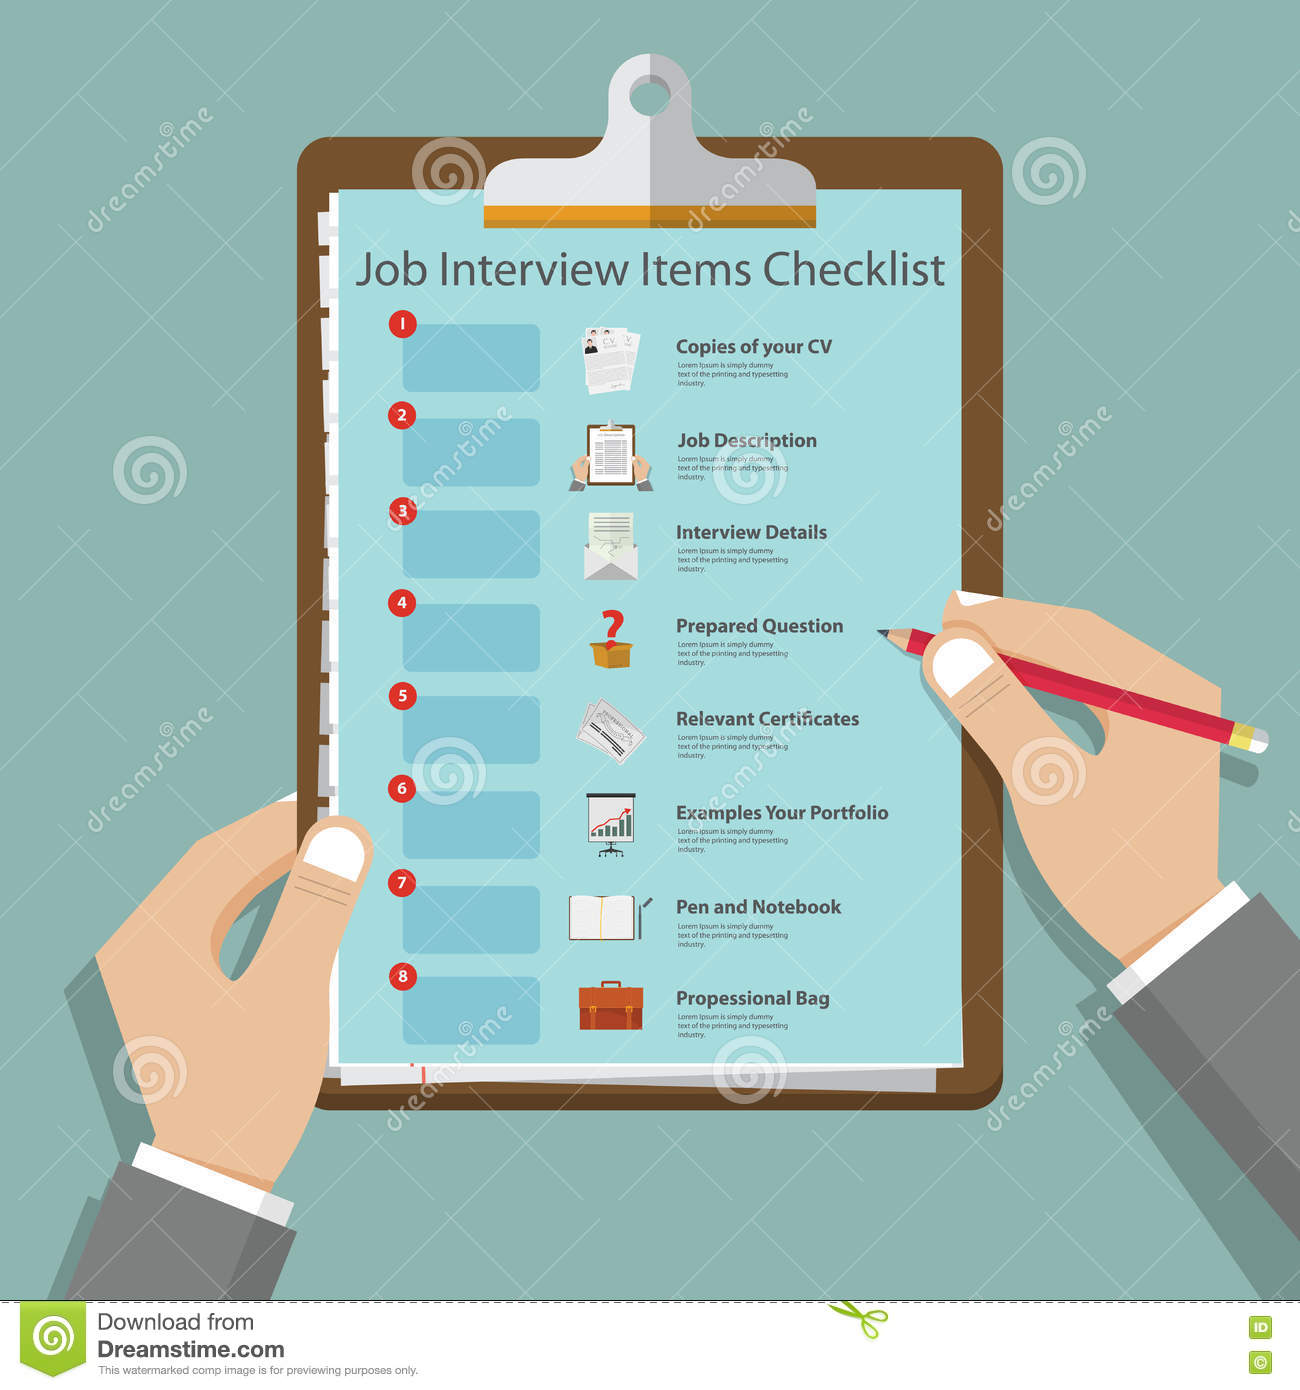 Job interview icons in flat design on clipboard. Job interview preparation infographic. Vector